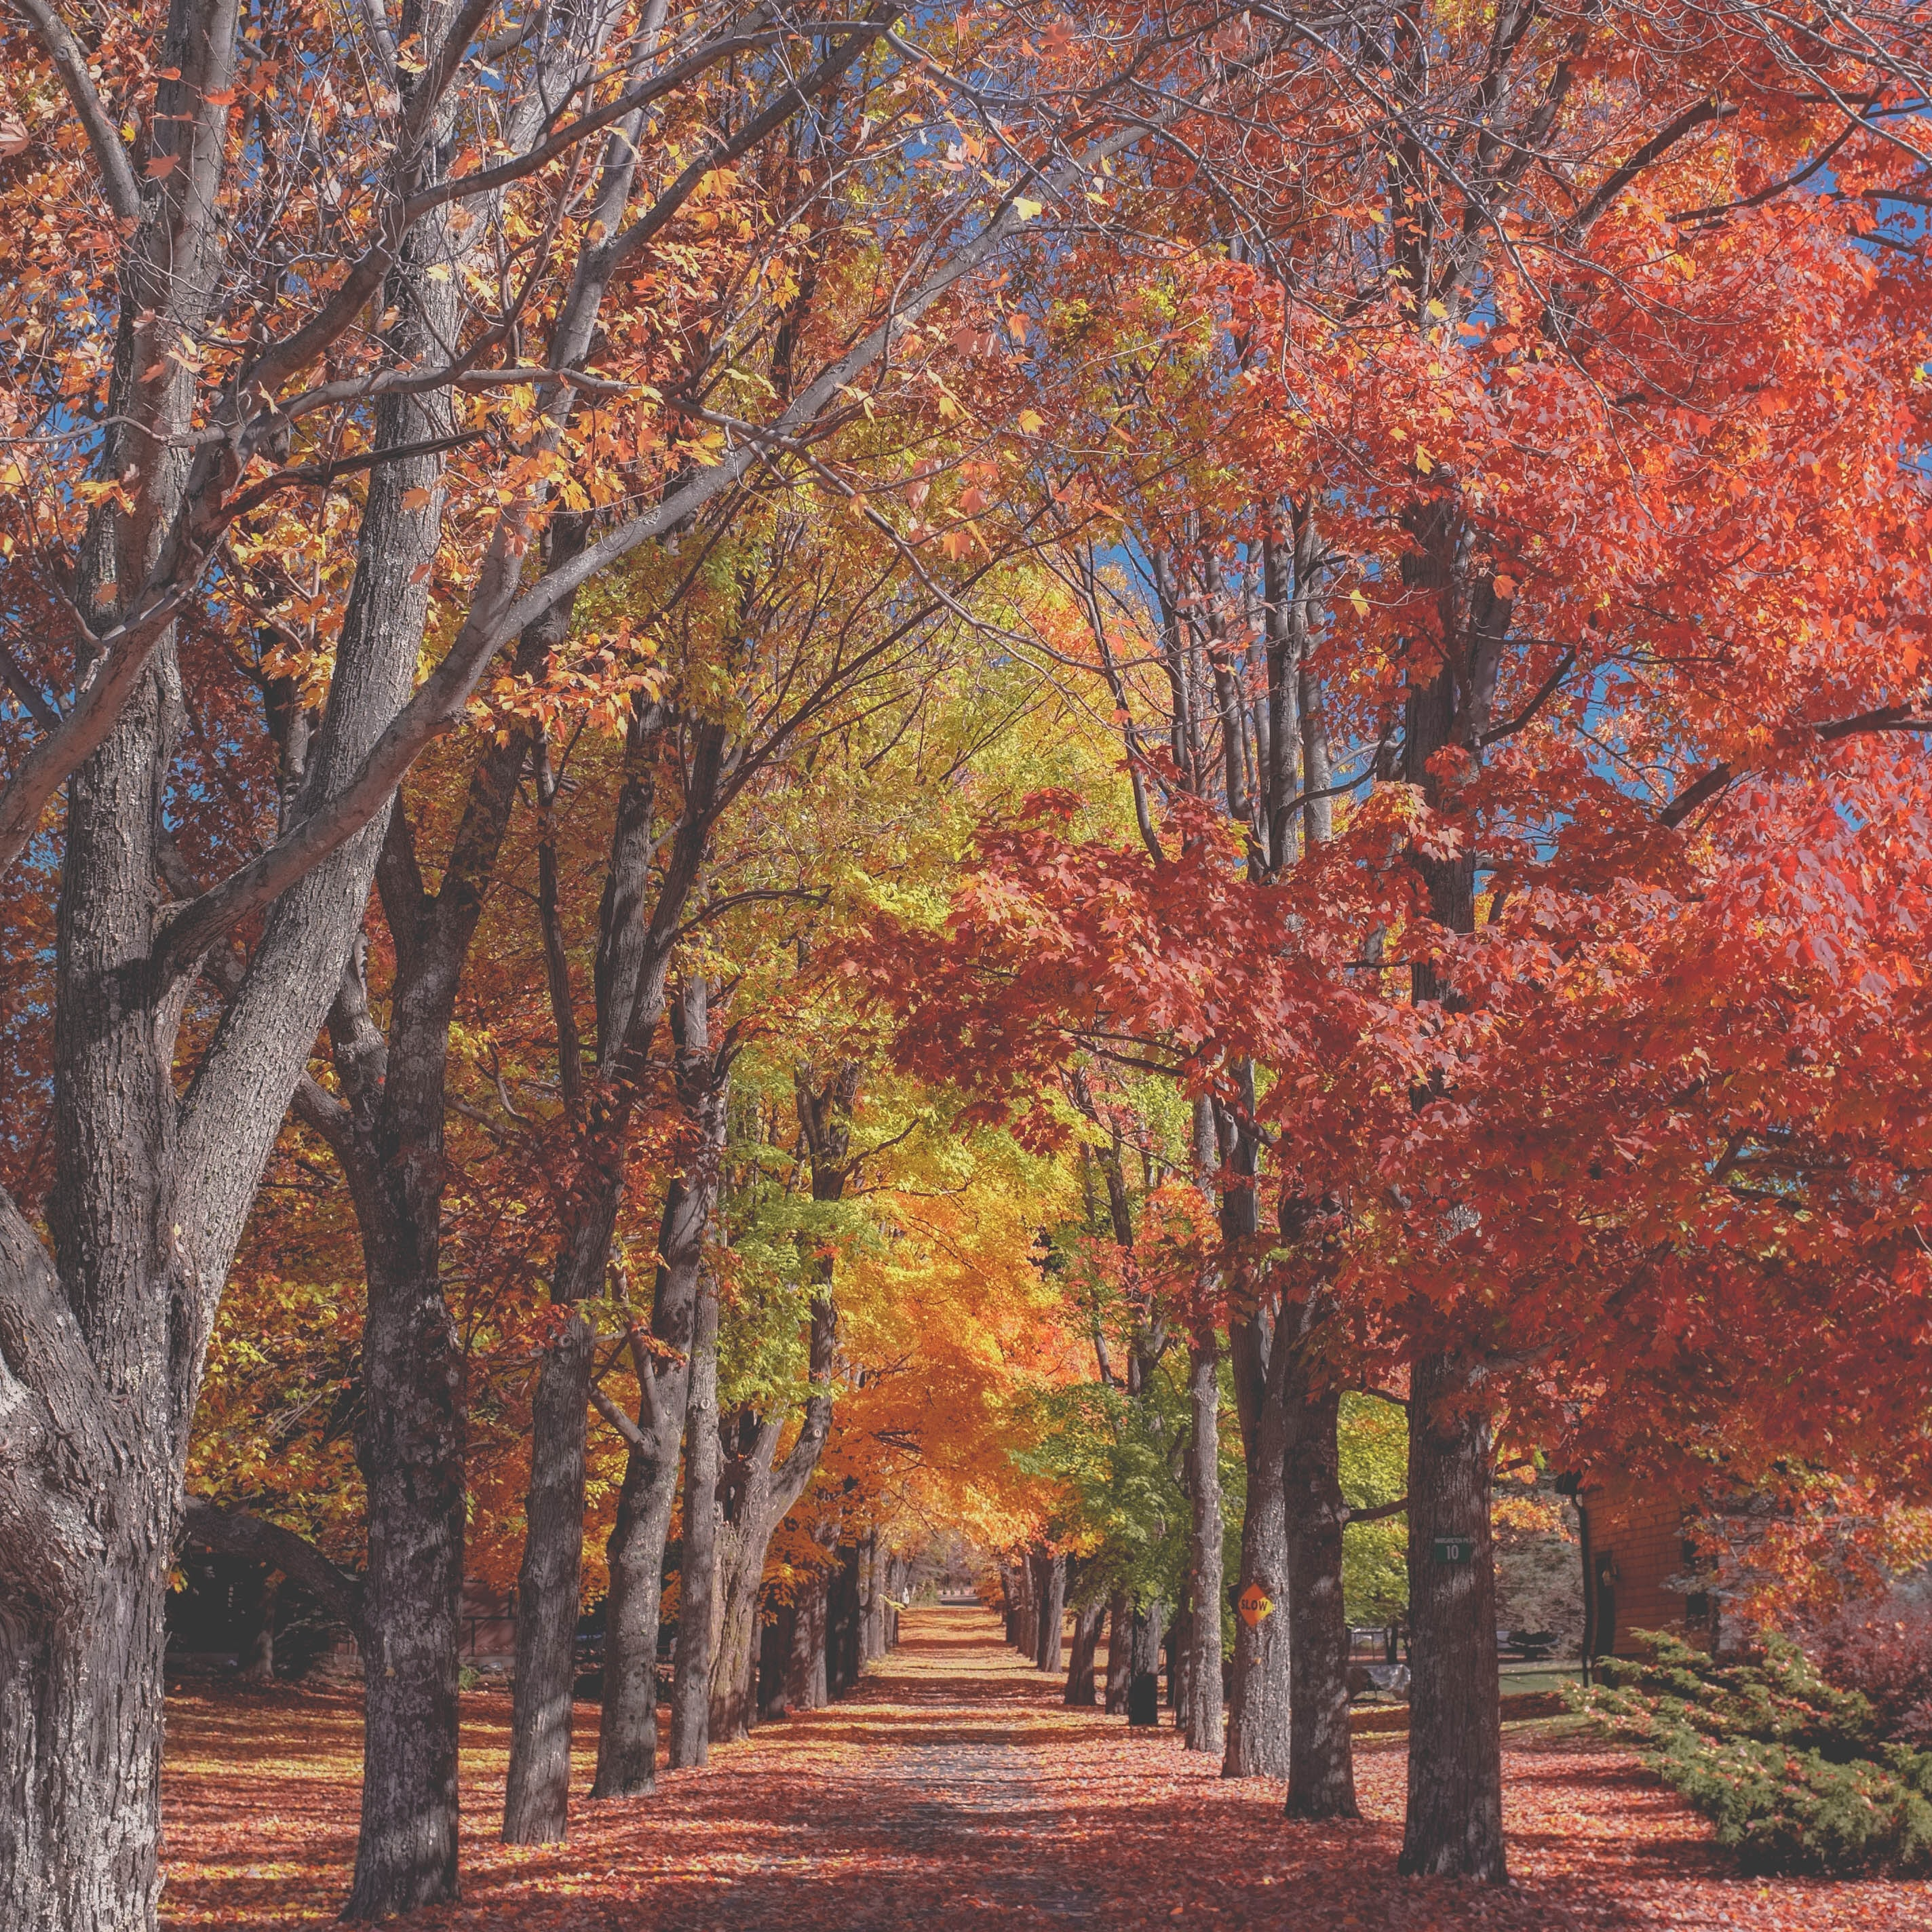 Colorful trees on either sides of a leaf-covered park alley in the autumn